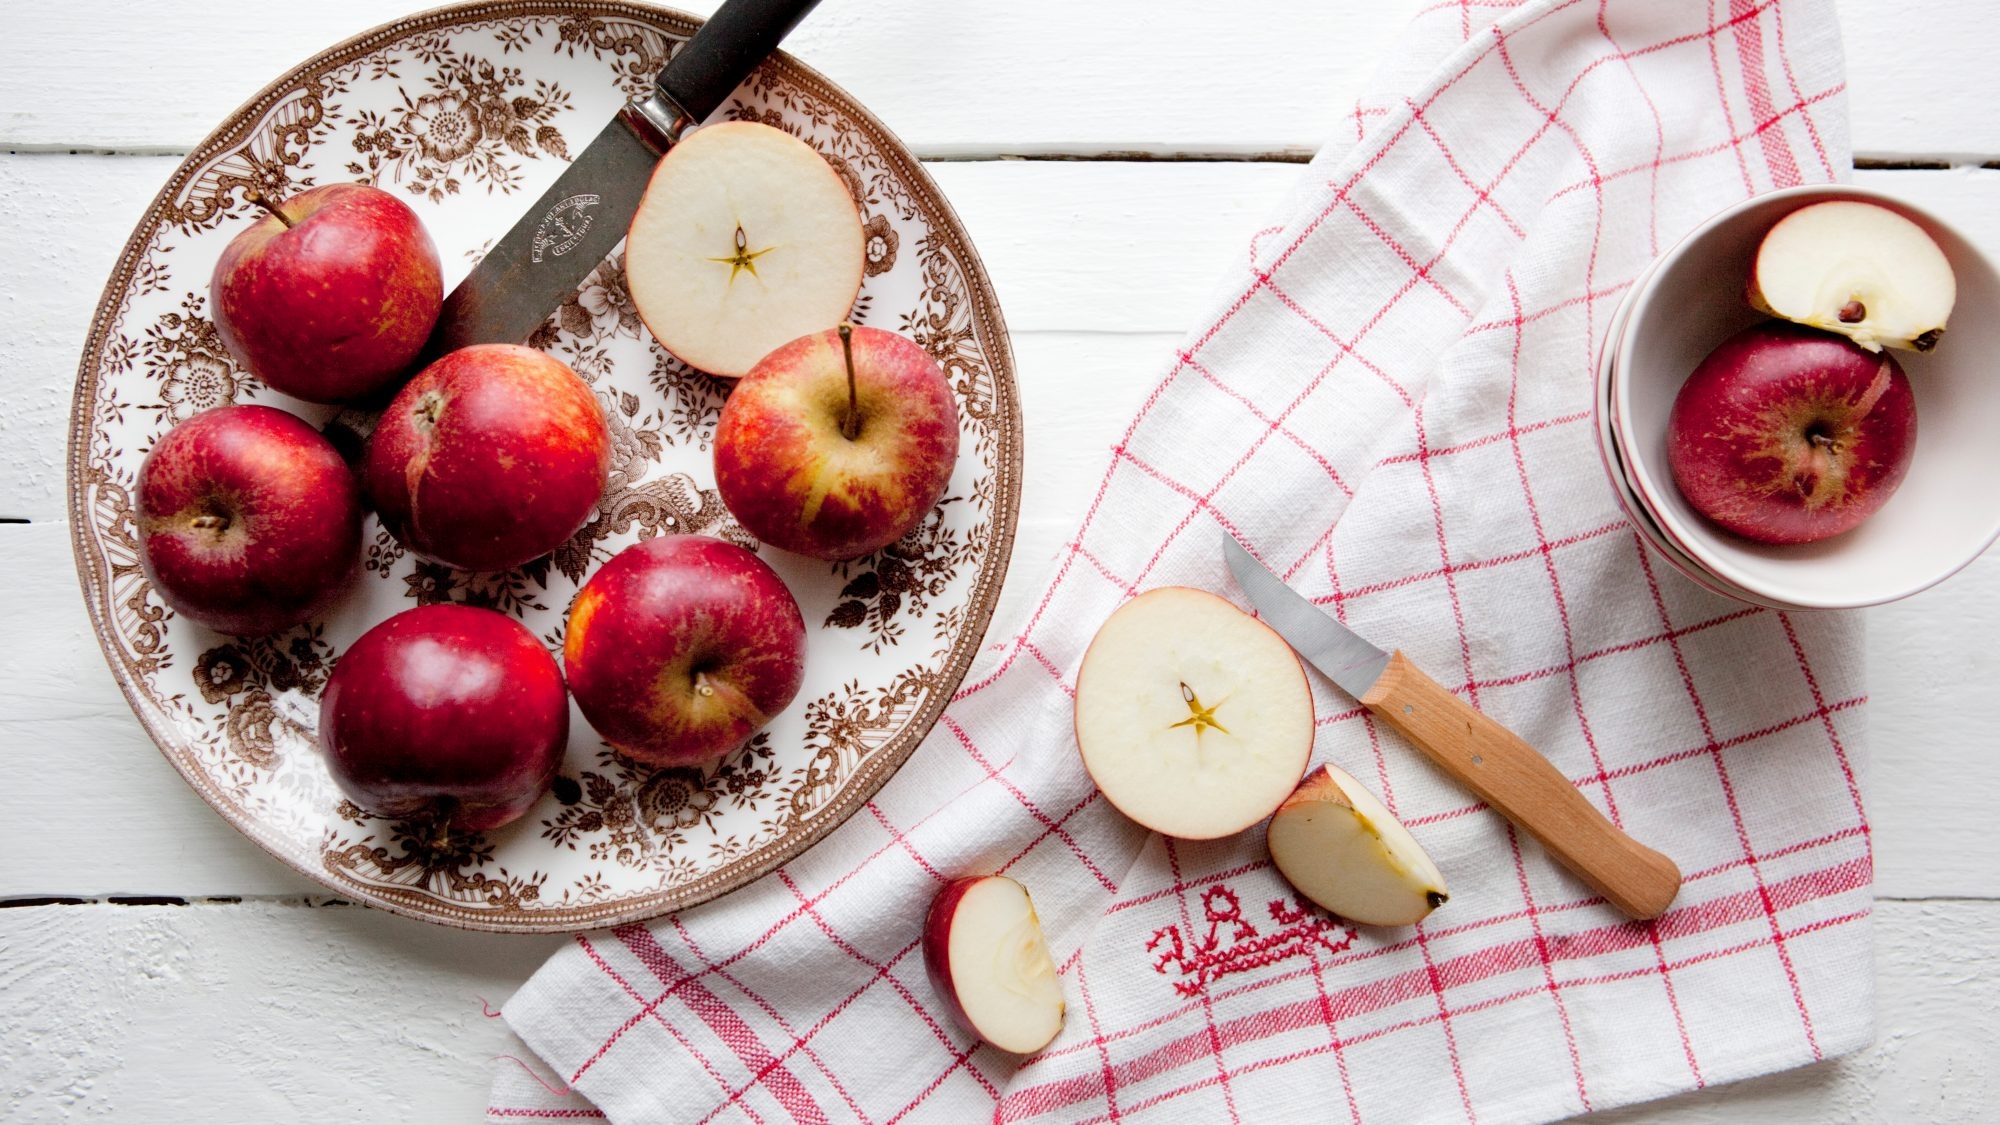 45 Festive, Flavorful Apple Recipes to Make This Fall